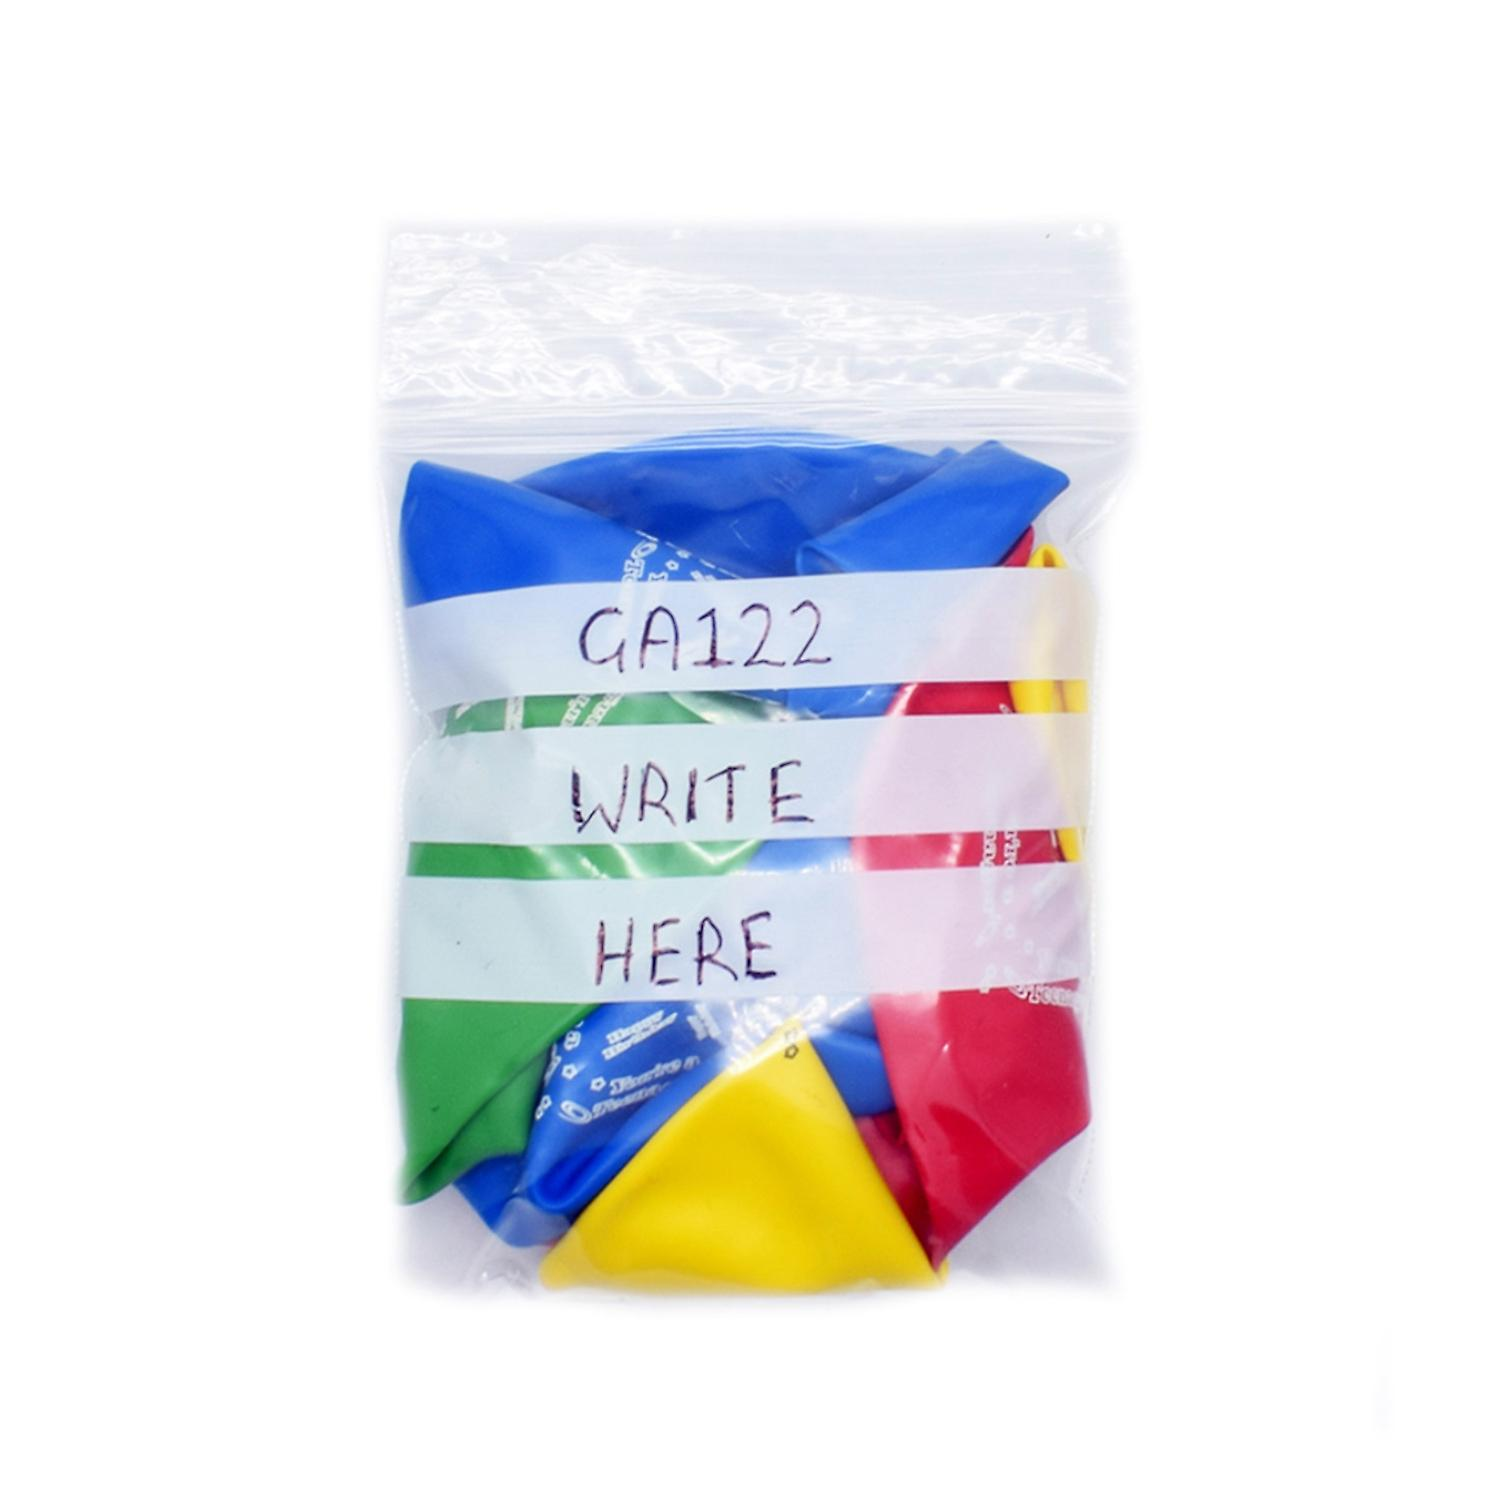 Simply Direct Grip Seal Plastic Poly Press & Seal Bags with Write on Panel (GA020 - GA133) - Assorted Sizes & Quantities